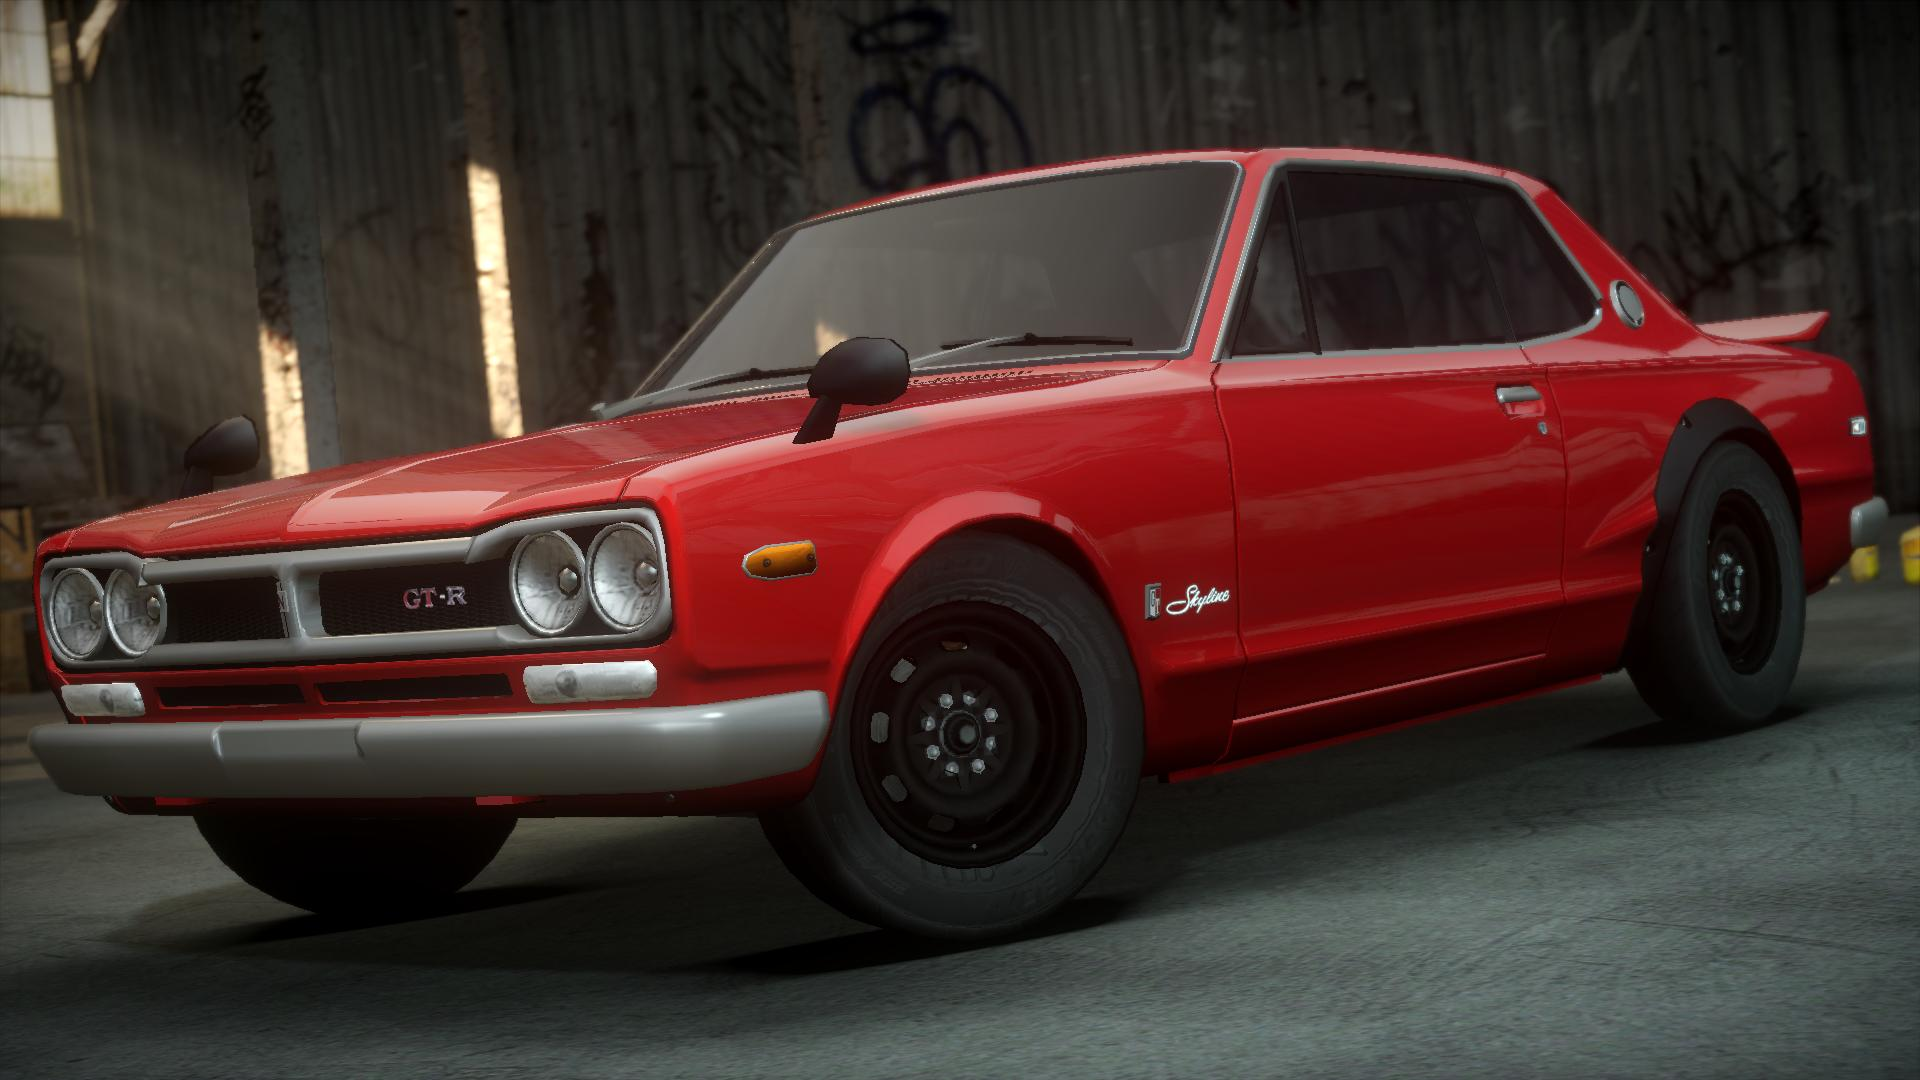 nissan skyline 2000gt r c10 need for speed wiki fandom powered by wikia. Black Bedroom Furniture Sets. Home Design Ideas